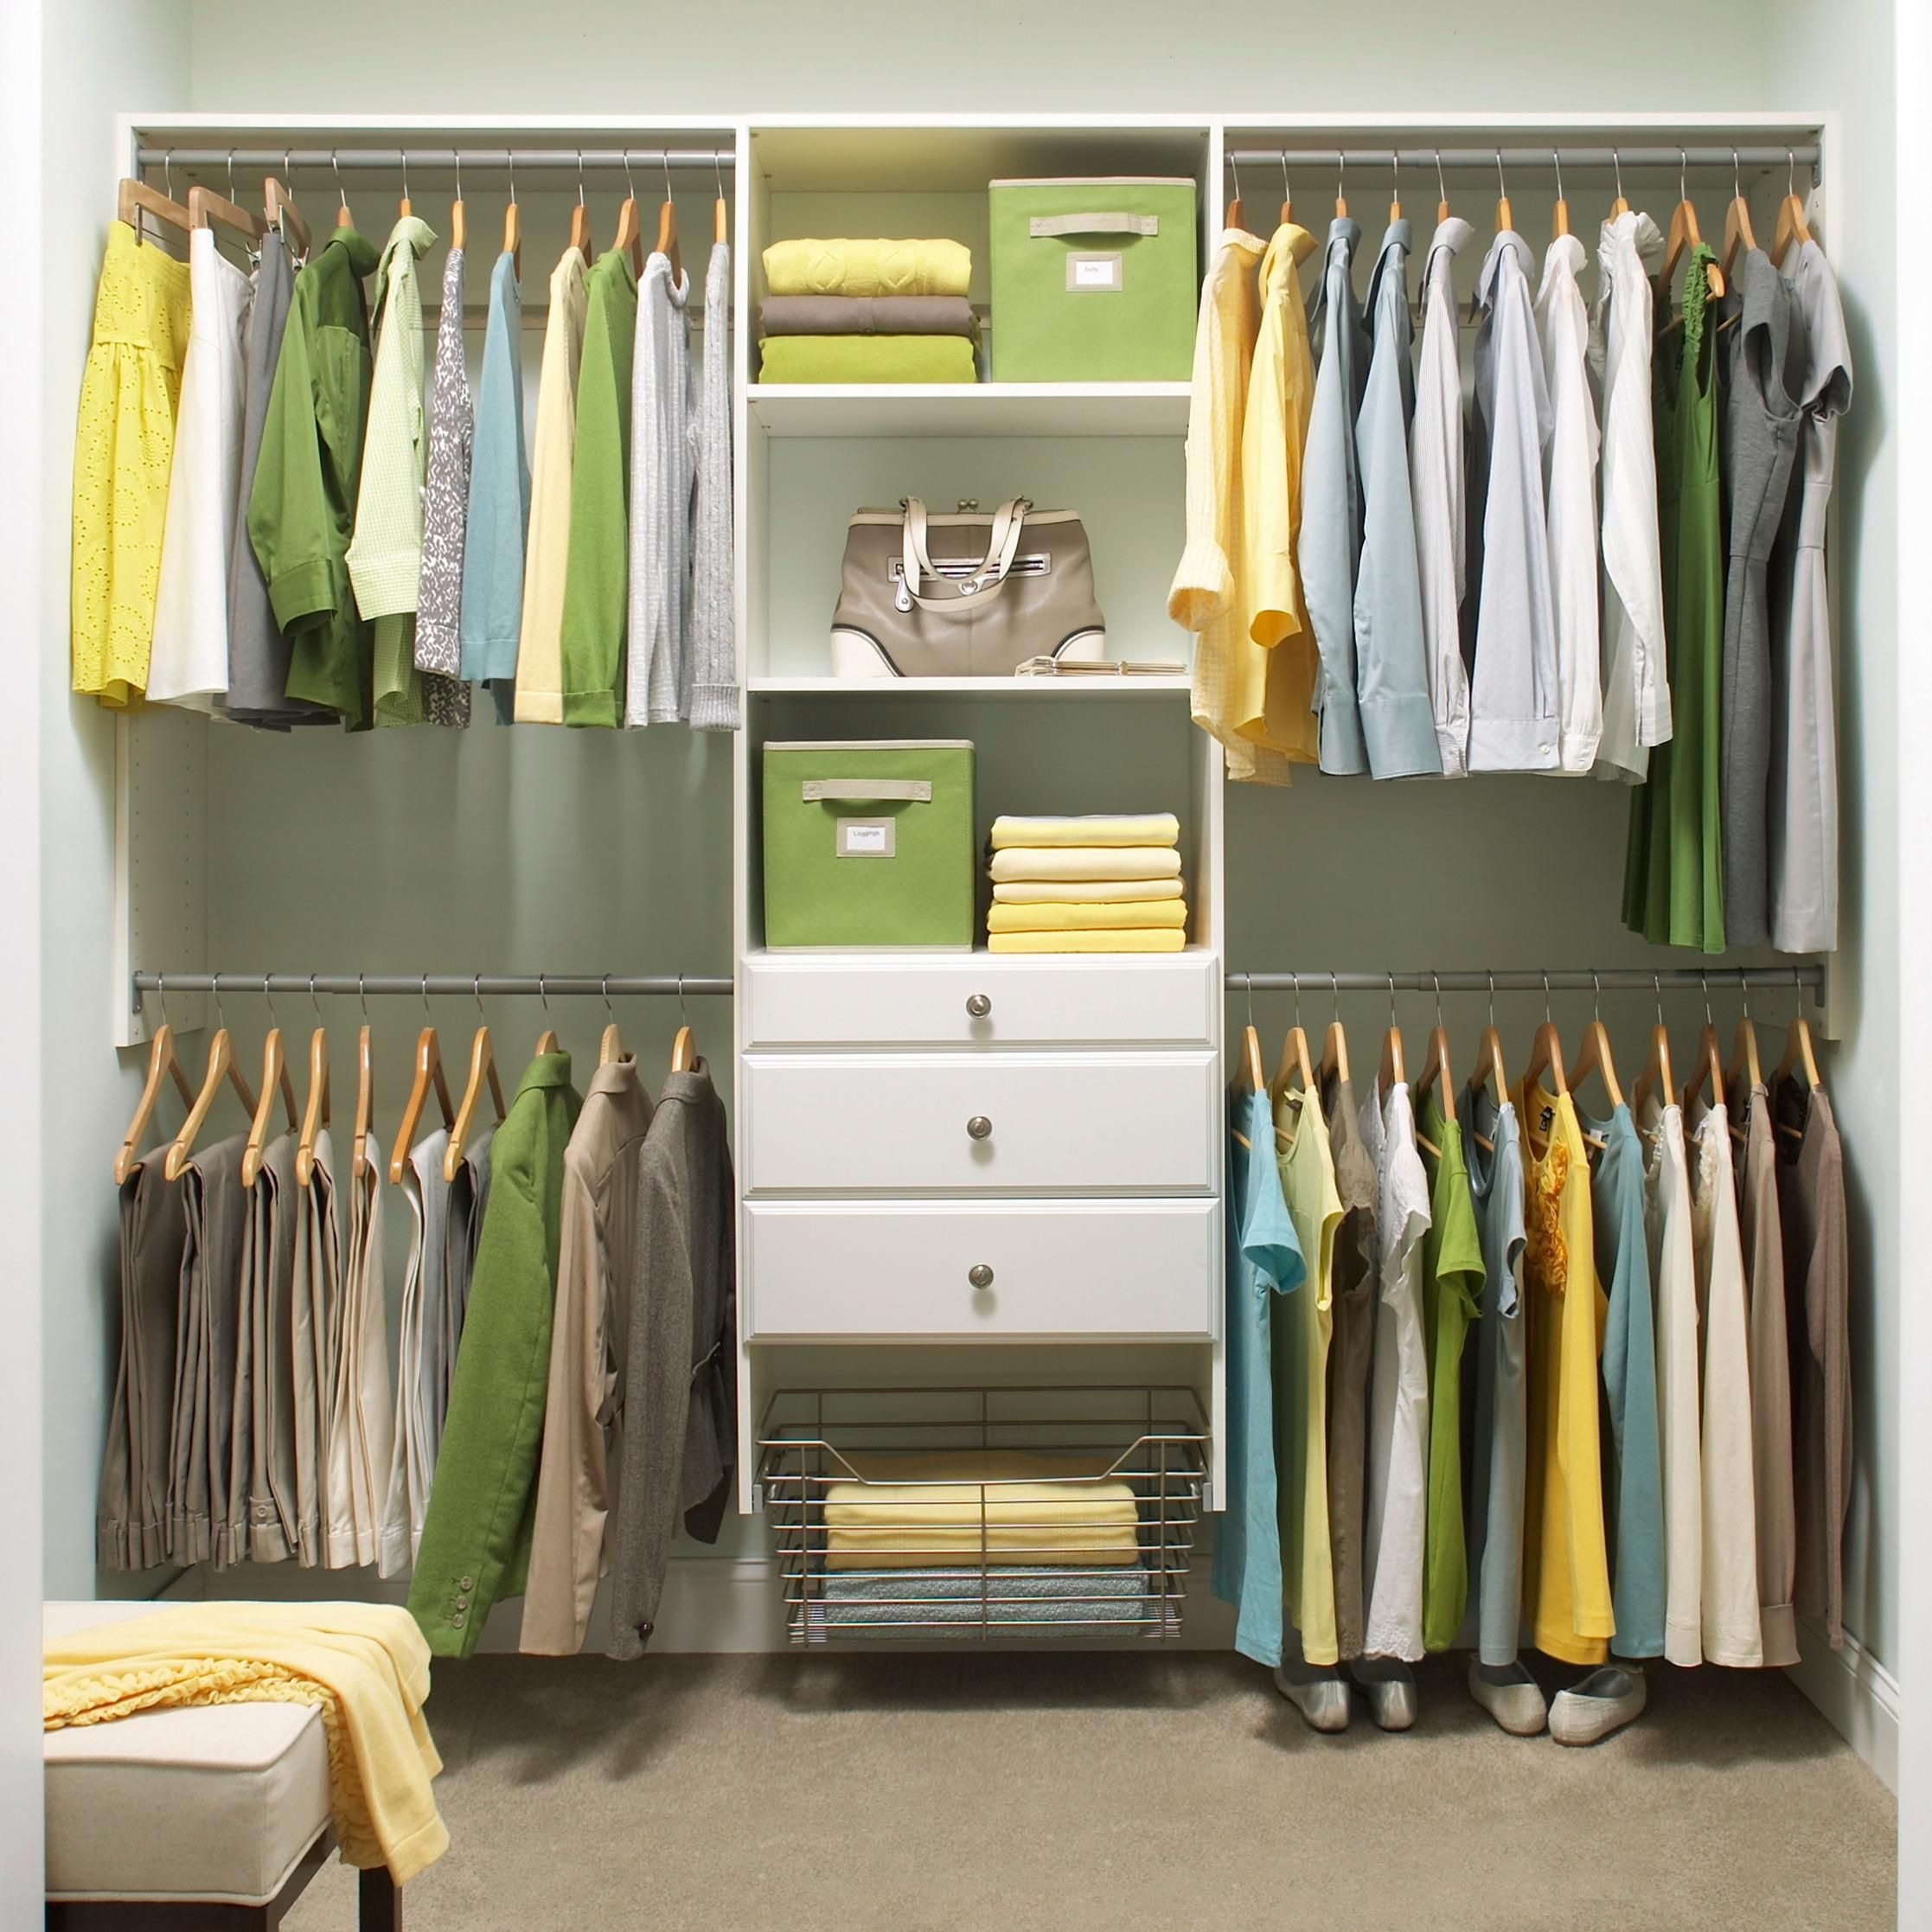 4 ways to think outside the closet organizations closet 4 ways to think outside the closet solutioingenieria Images